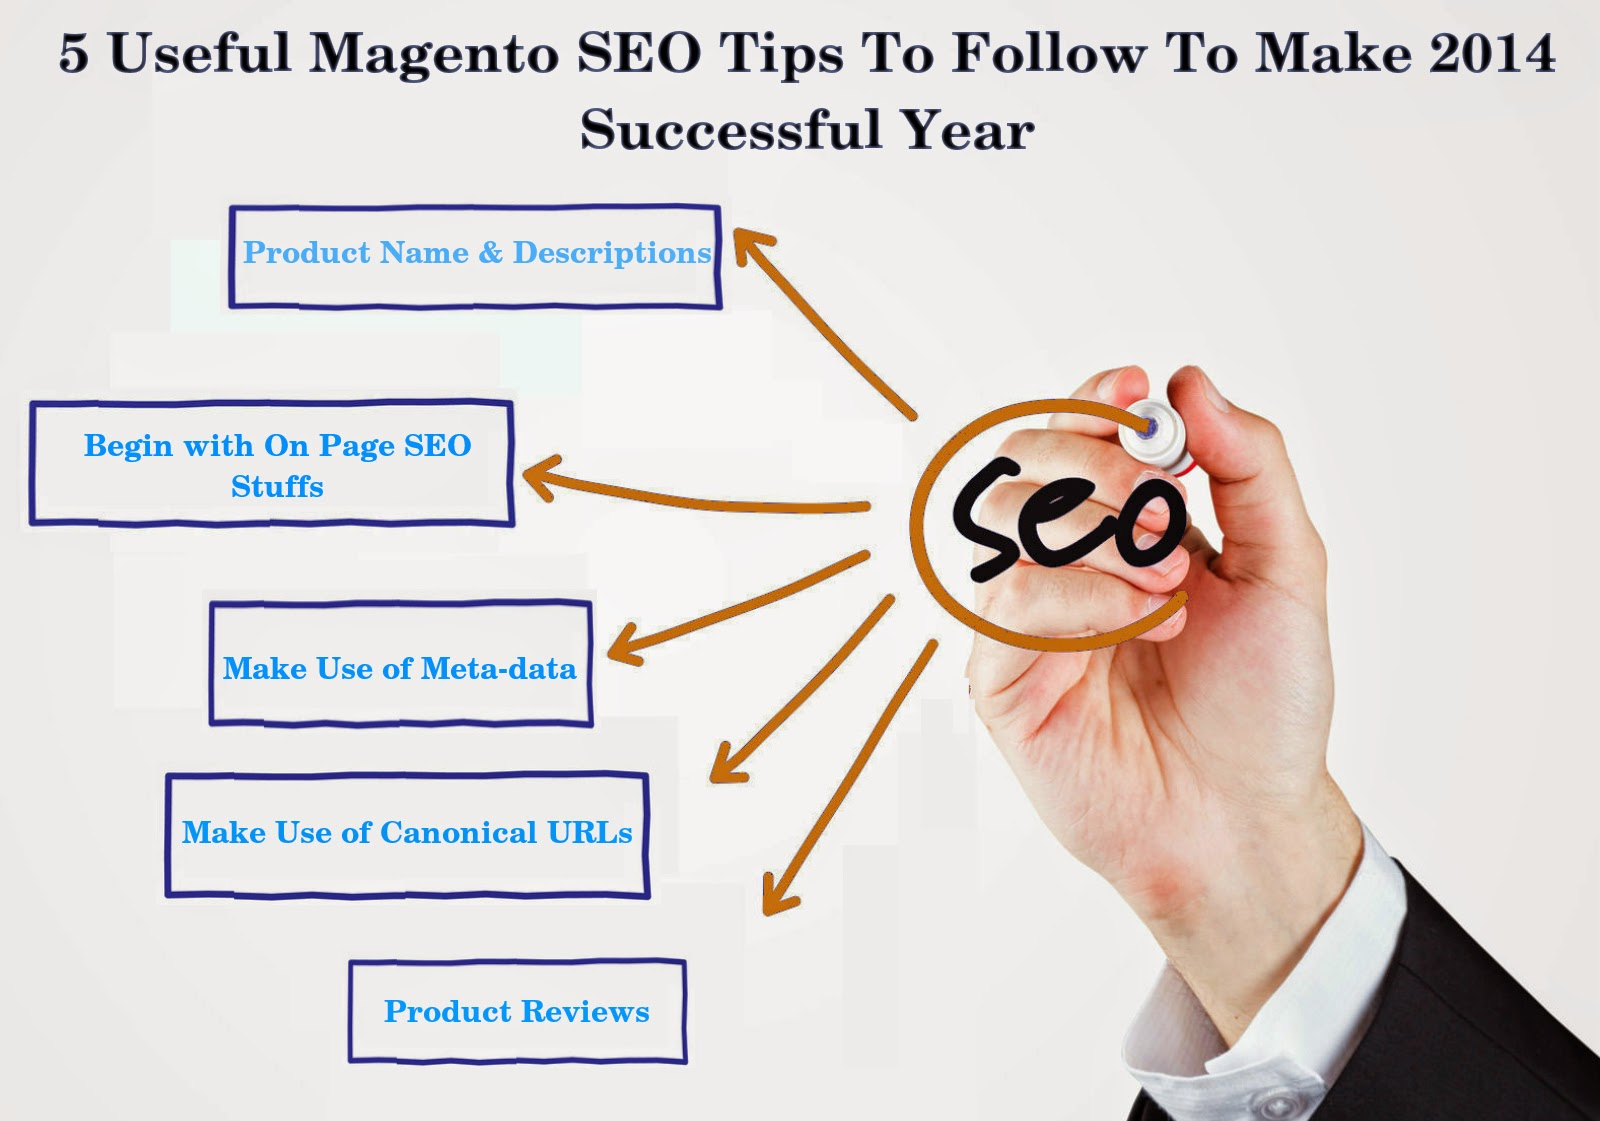 Follow 5 Useful Magento SEO Tips To Make 2014 Successful Year